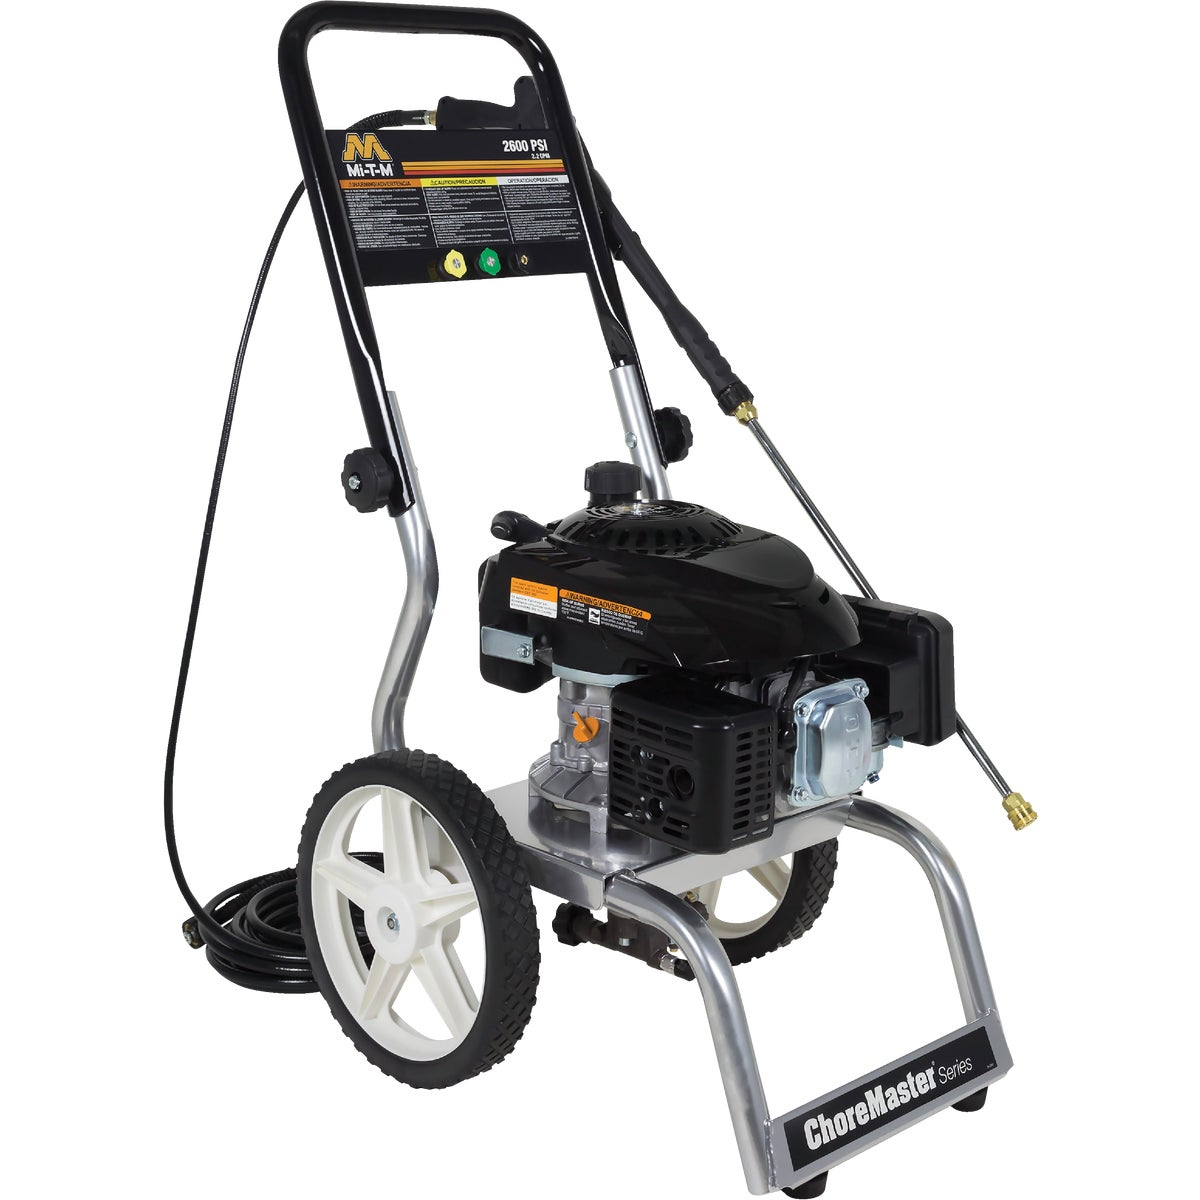 2400PSI PRESSURE WASHER